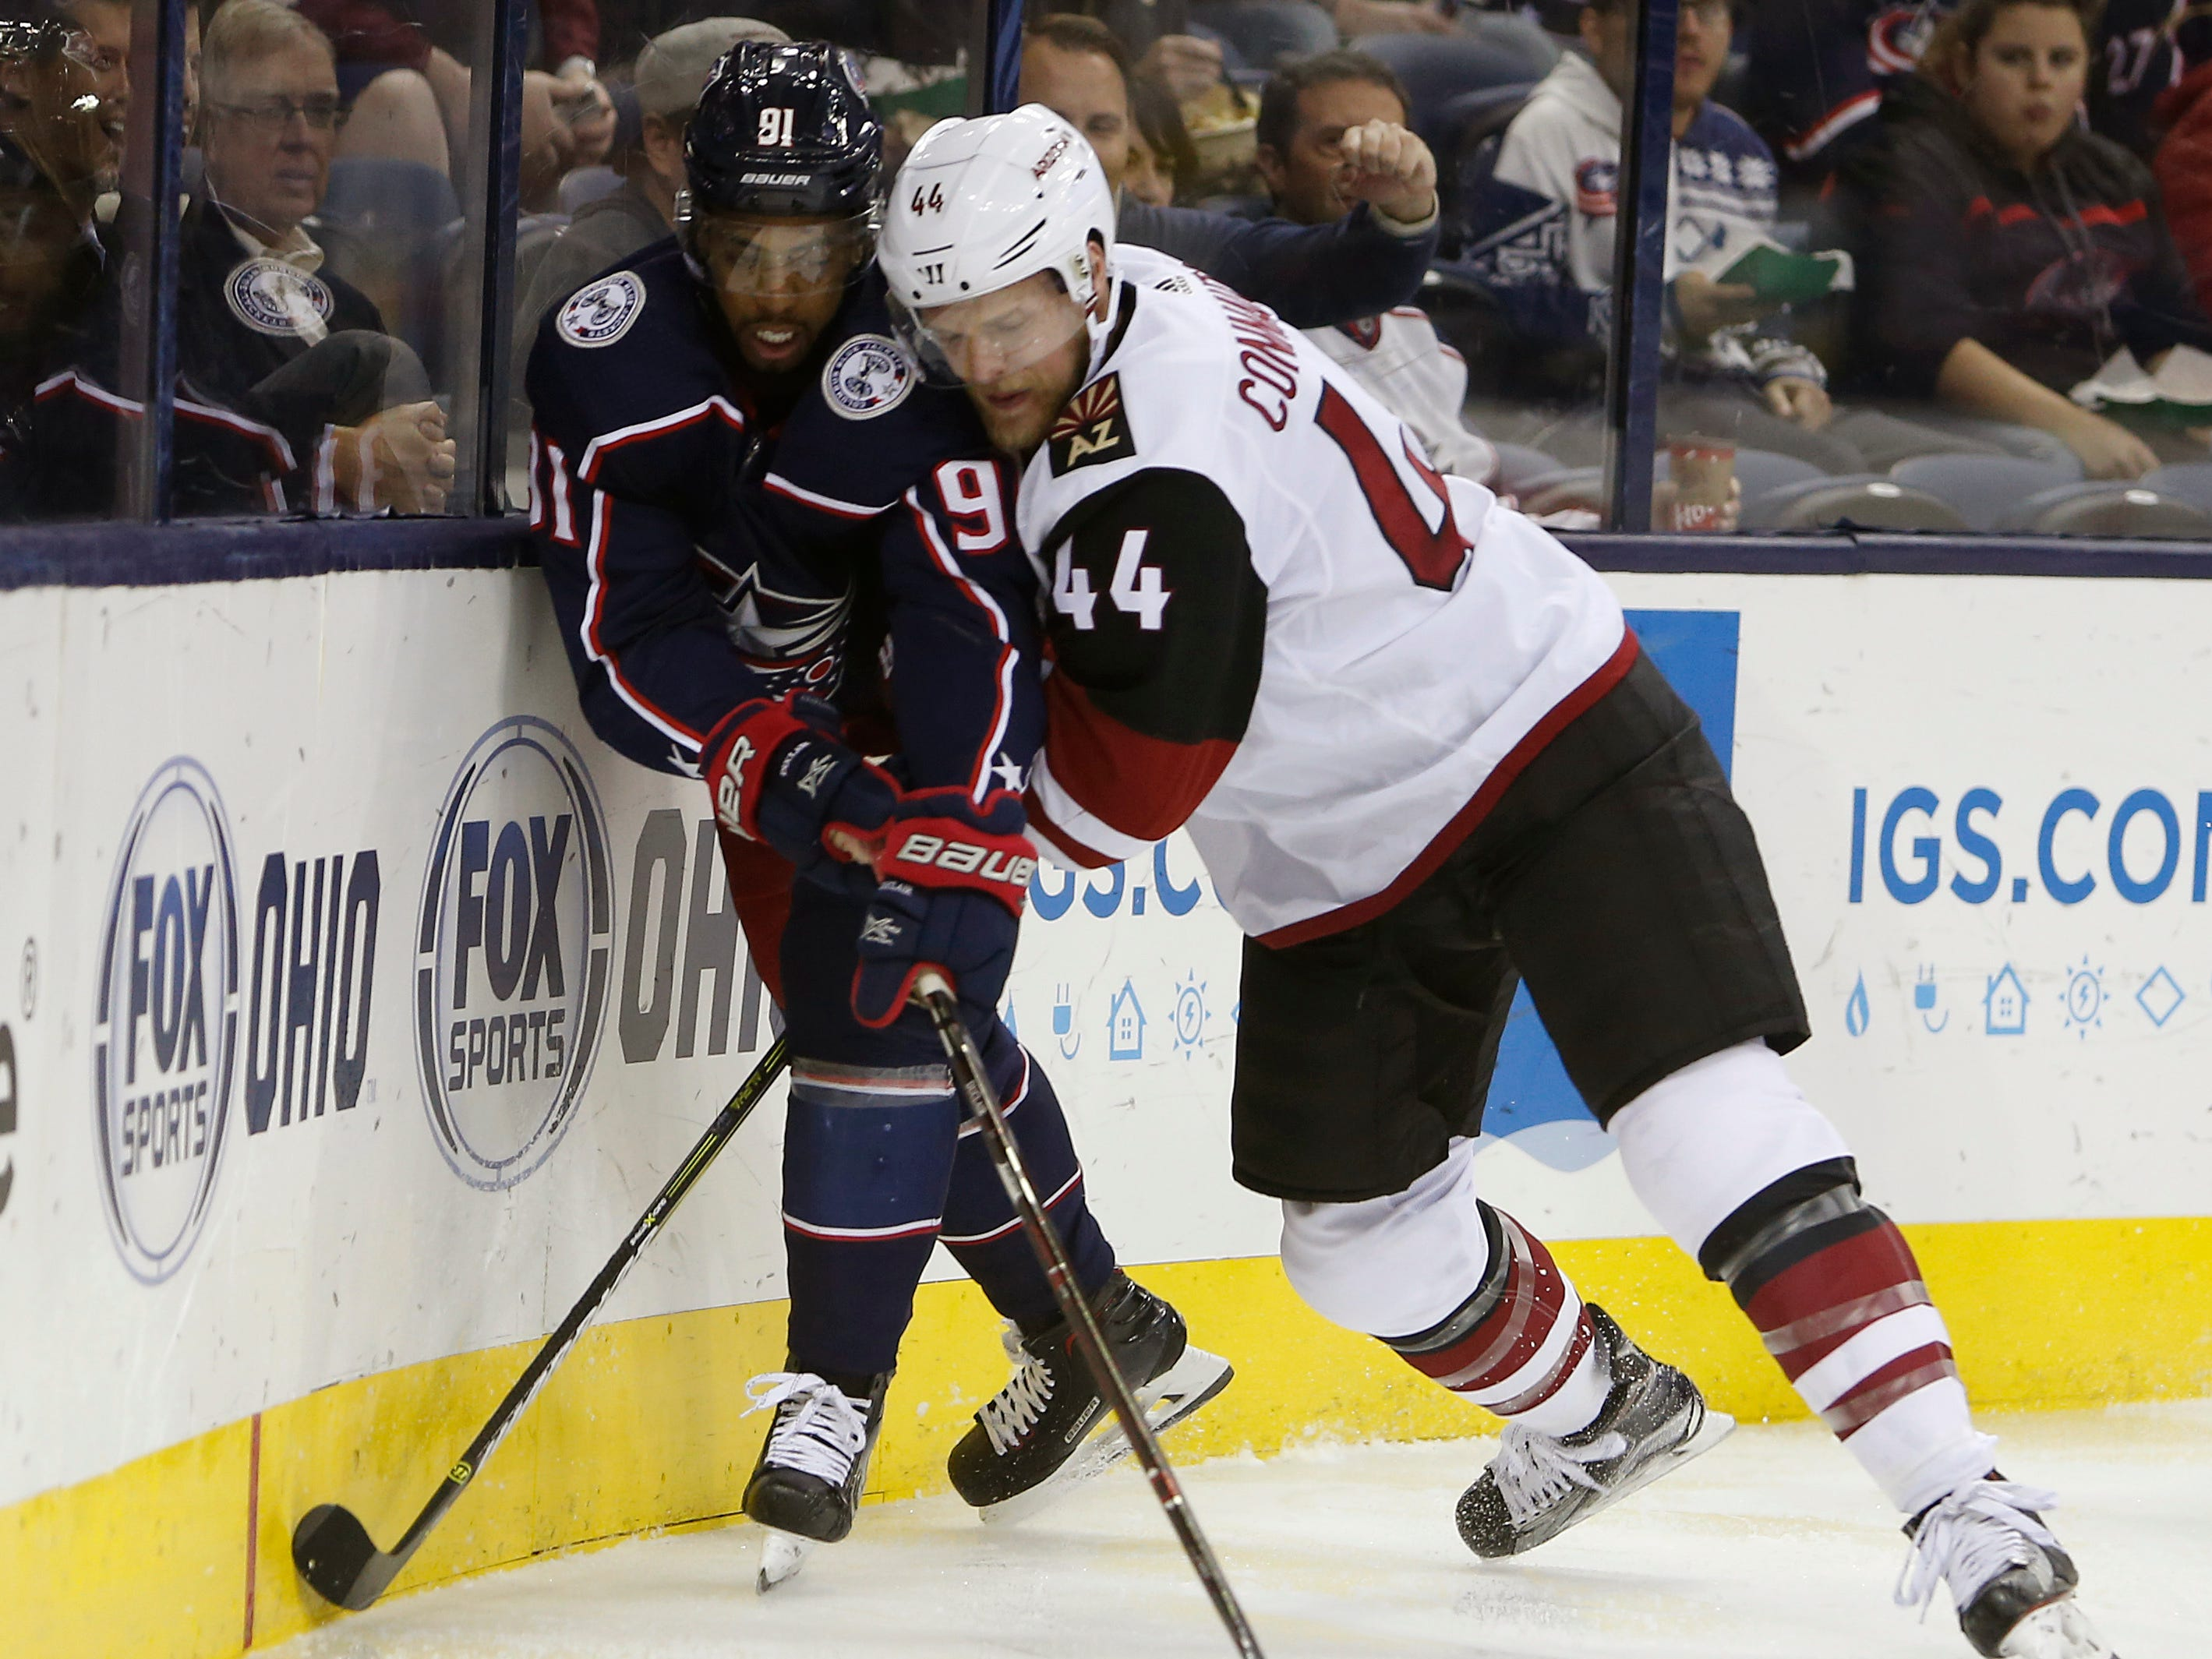 Arizona Coyotes' Kevin Connauton, right, checks Columbus Blue Jackets' Anthony Duclair during the second period of an NHL hockey game, Tuesday, Oct. 23, 2018, in Columbus, Ohio.